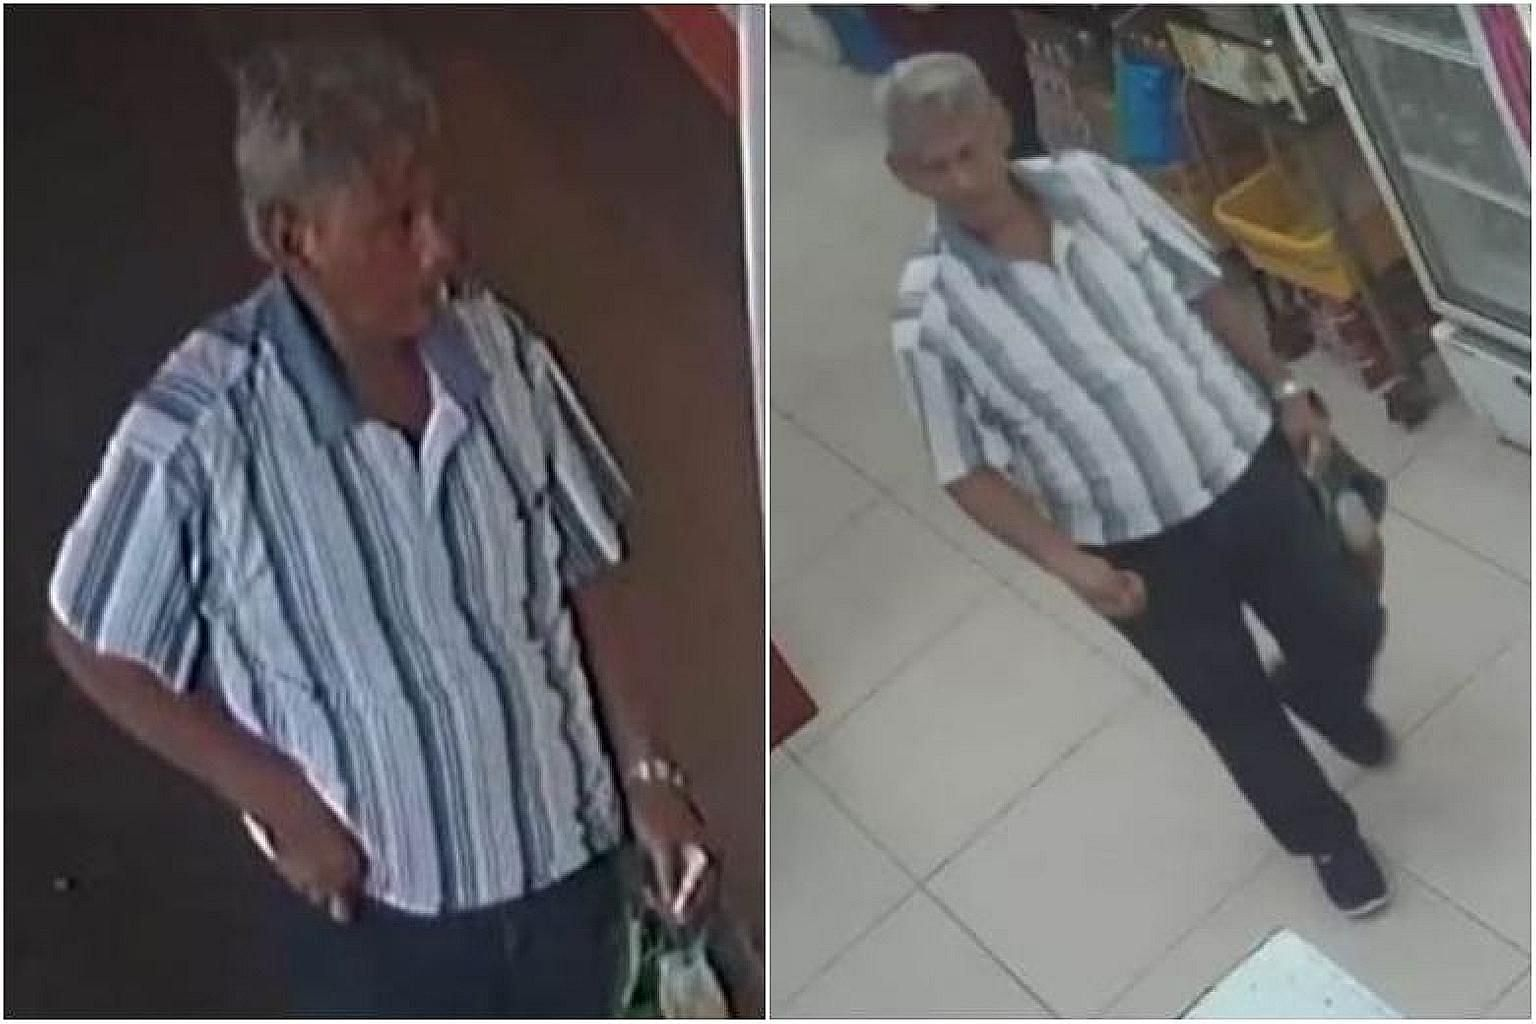 Photos released by the police of the man who allegedly tried to rob a Bedok pawnshop last Friday.